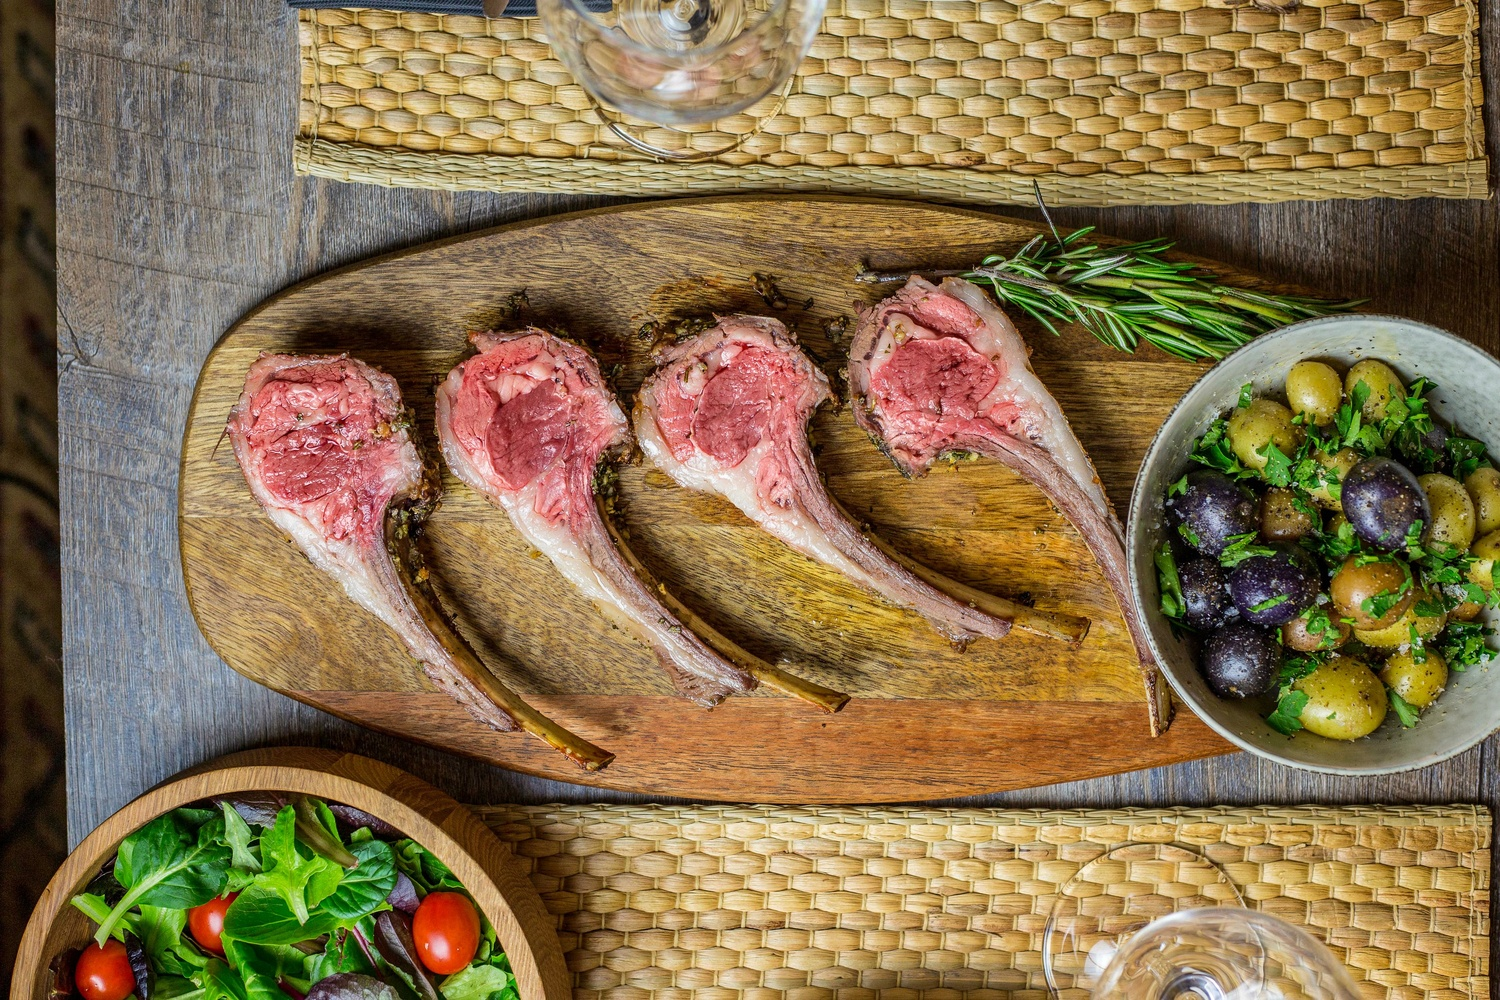 Lamb Chops for Lunch by Stacey Sprenz